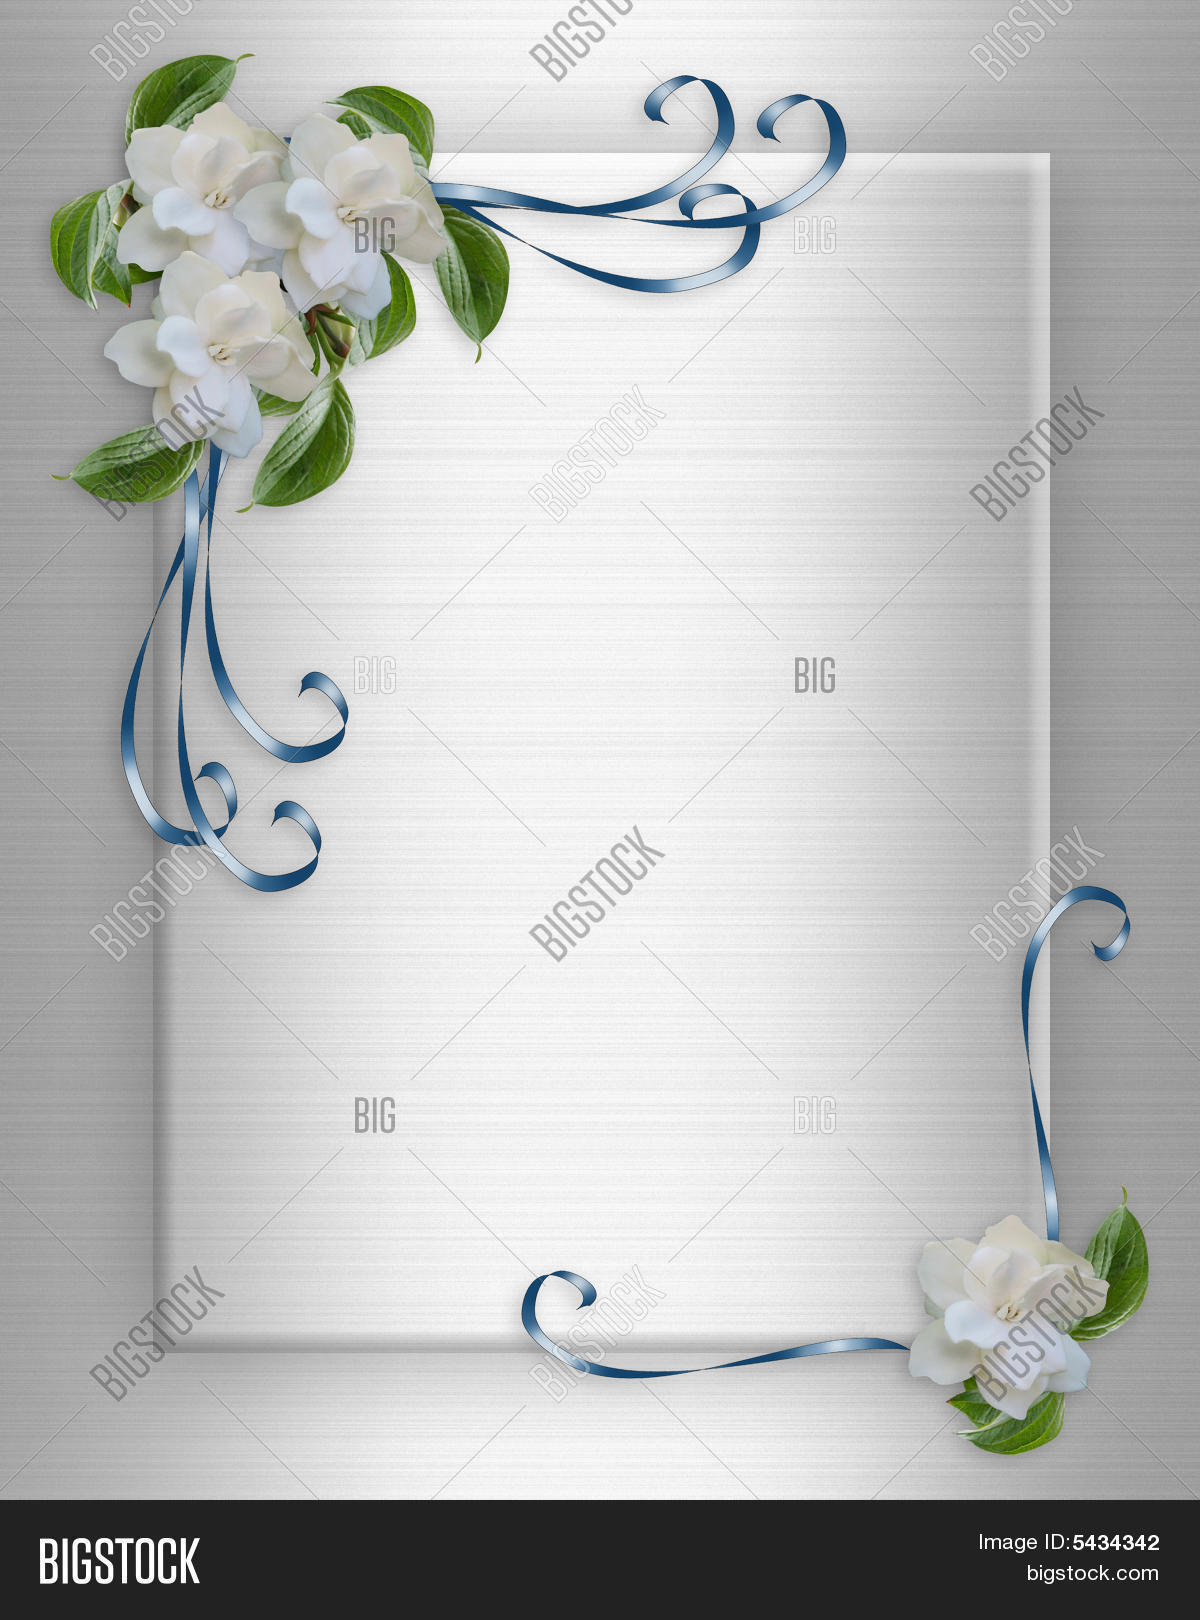 Wedding Invitation Background Image Photo Bigstock